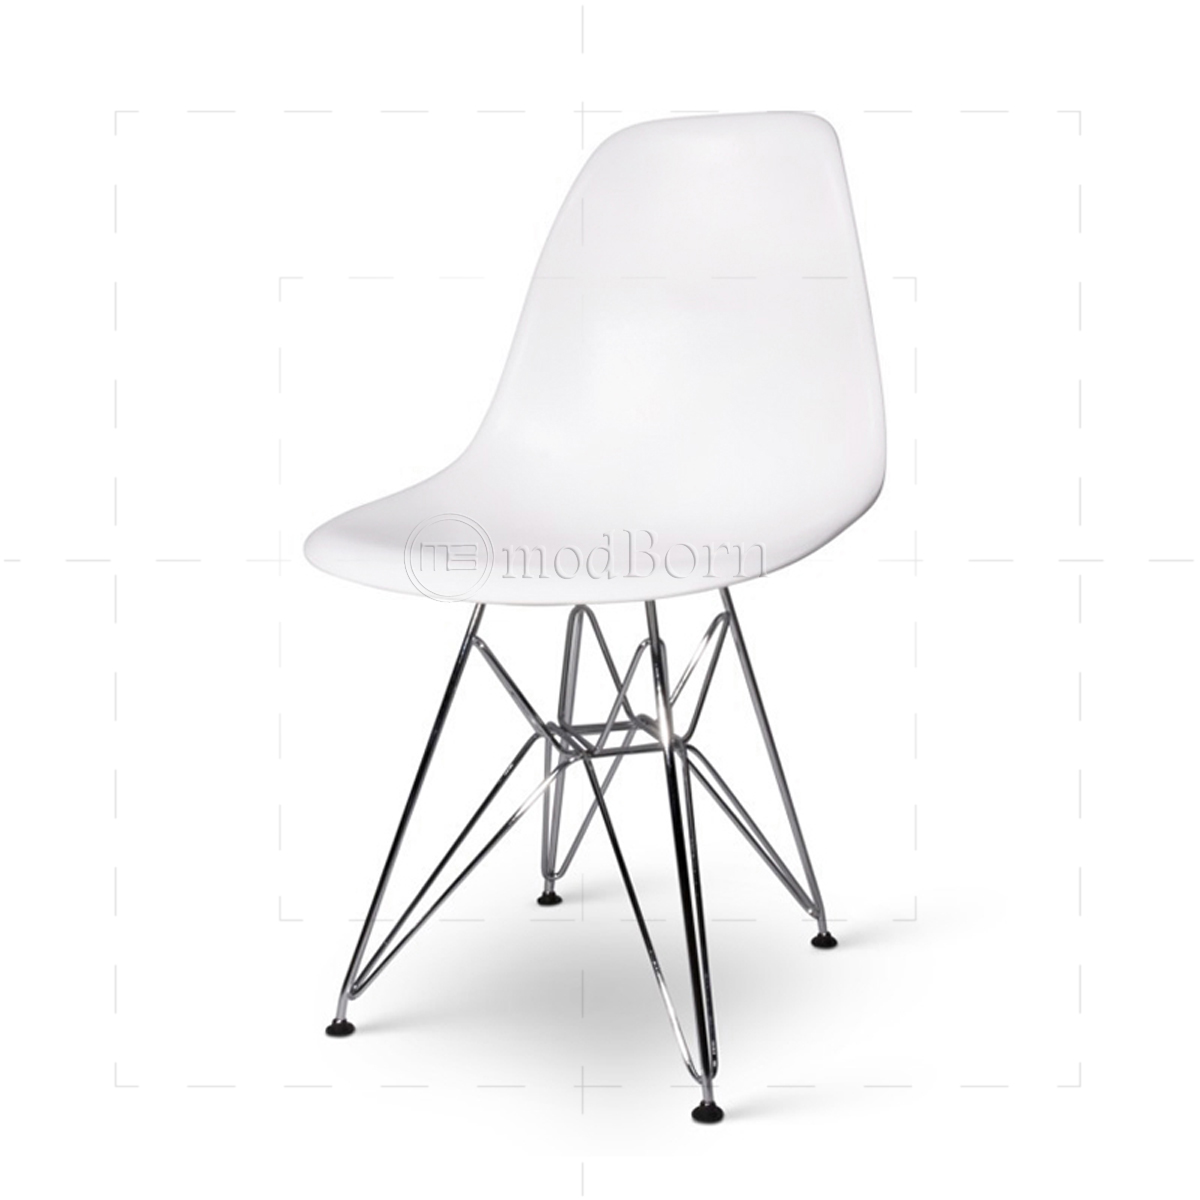 Eames Chair White Price Eames Plastic Chair DAW Available here